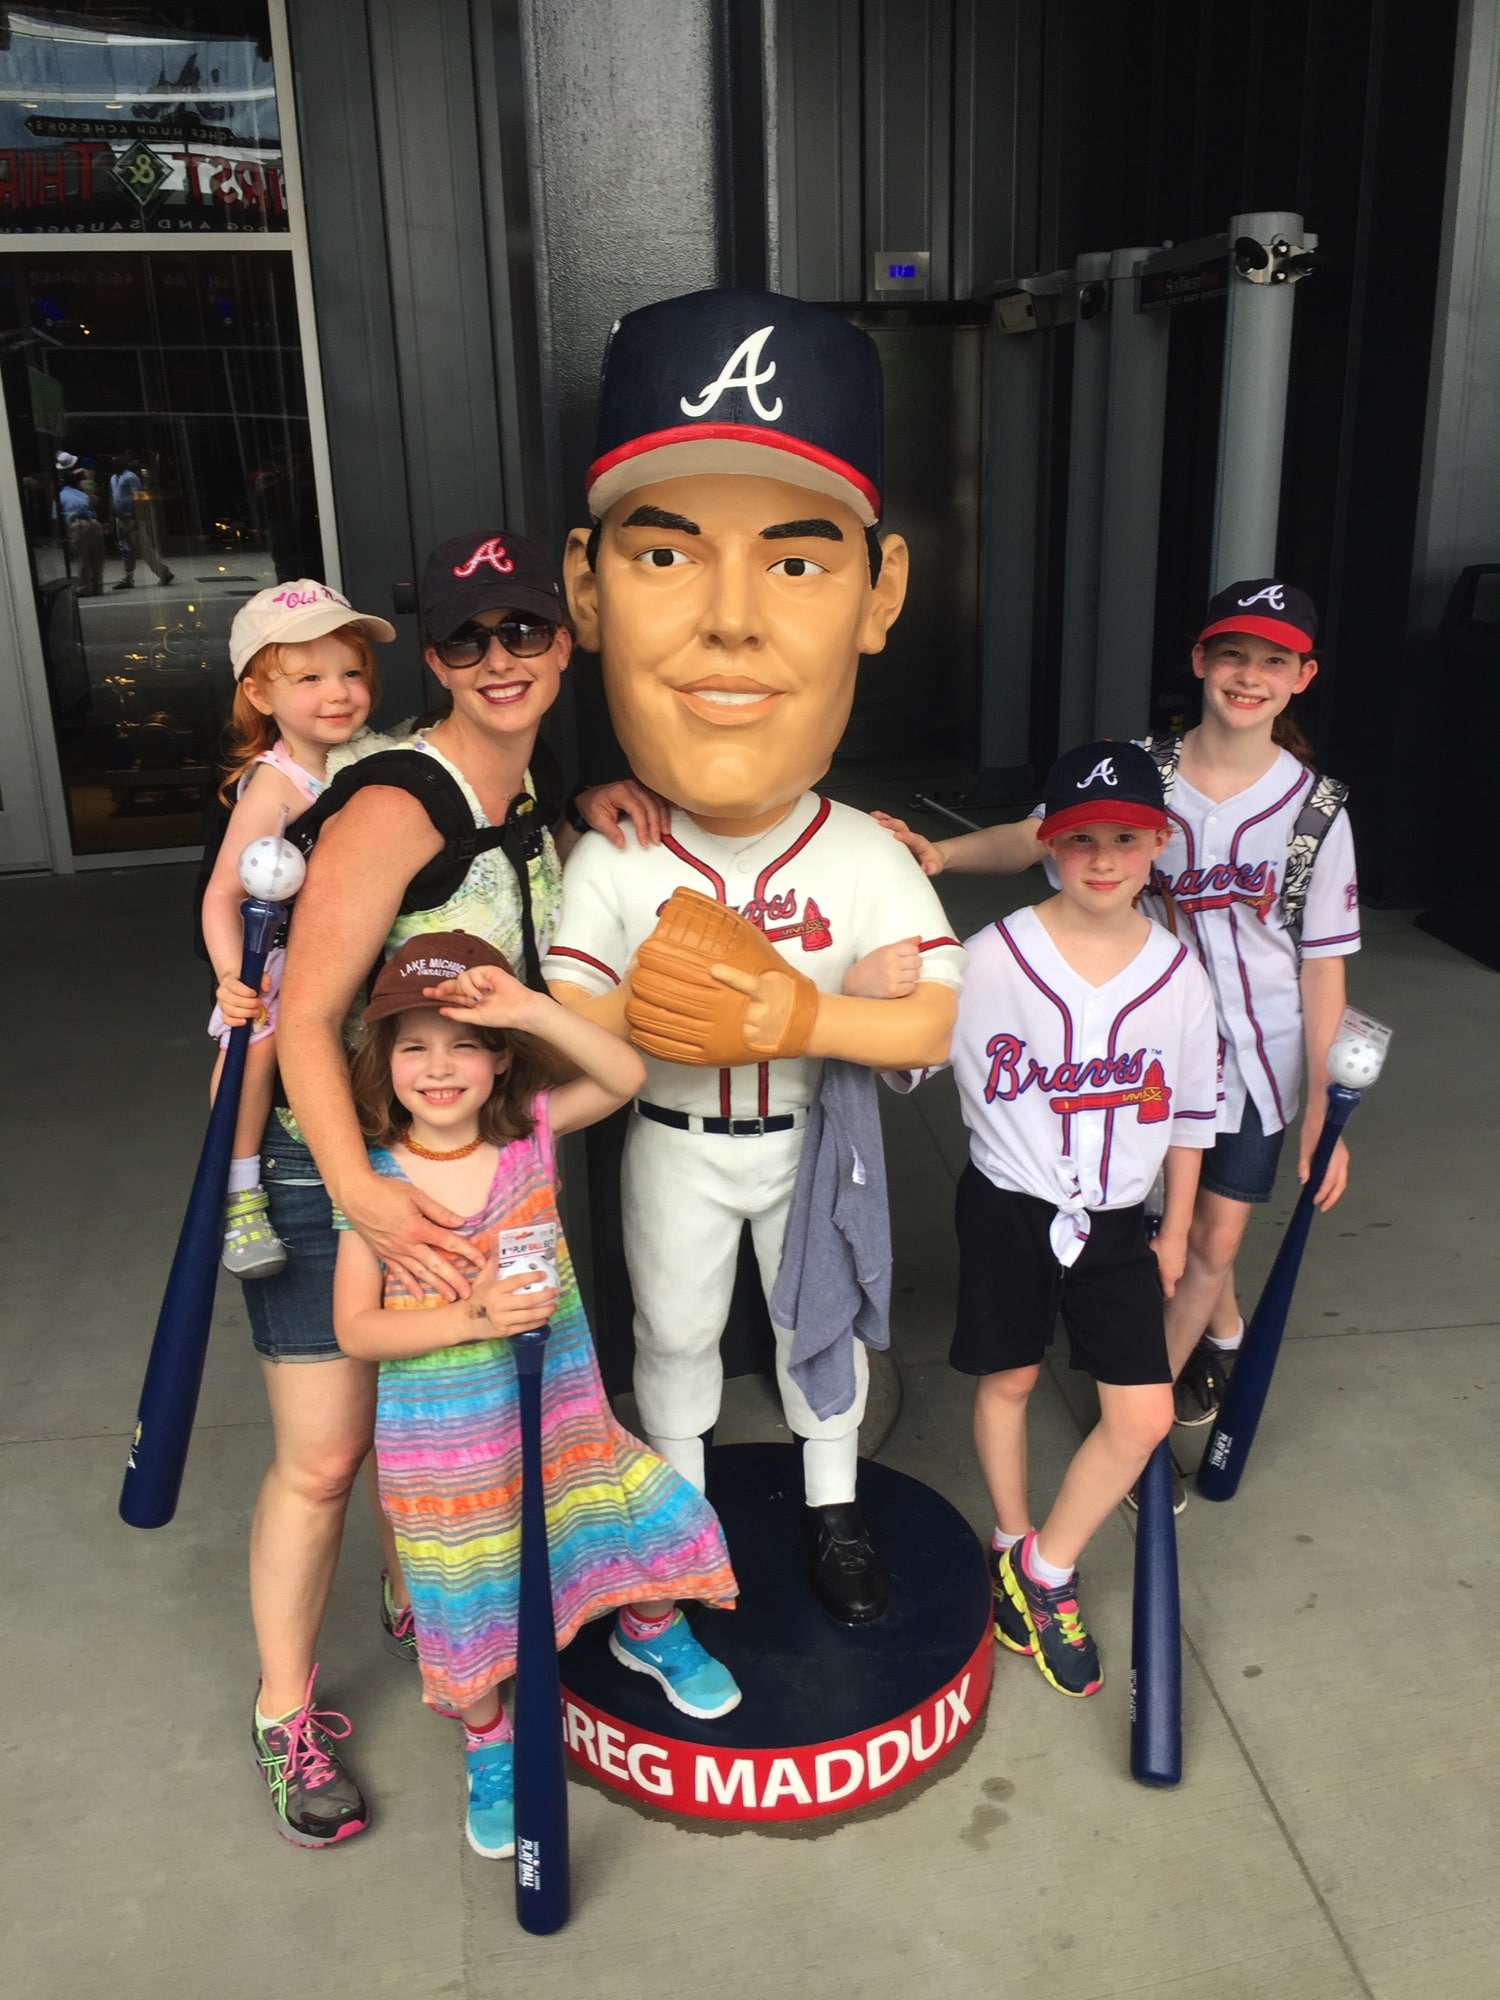 At the Braves Game